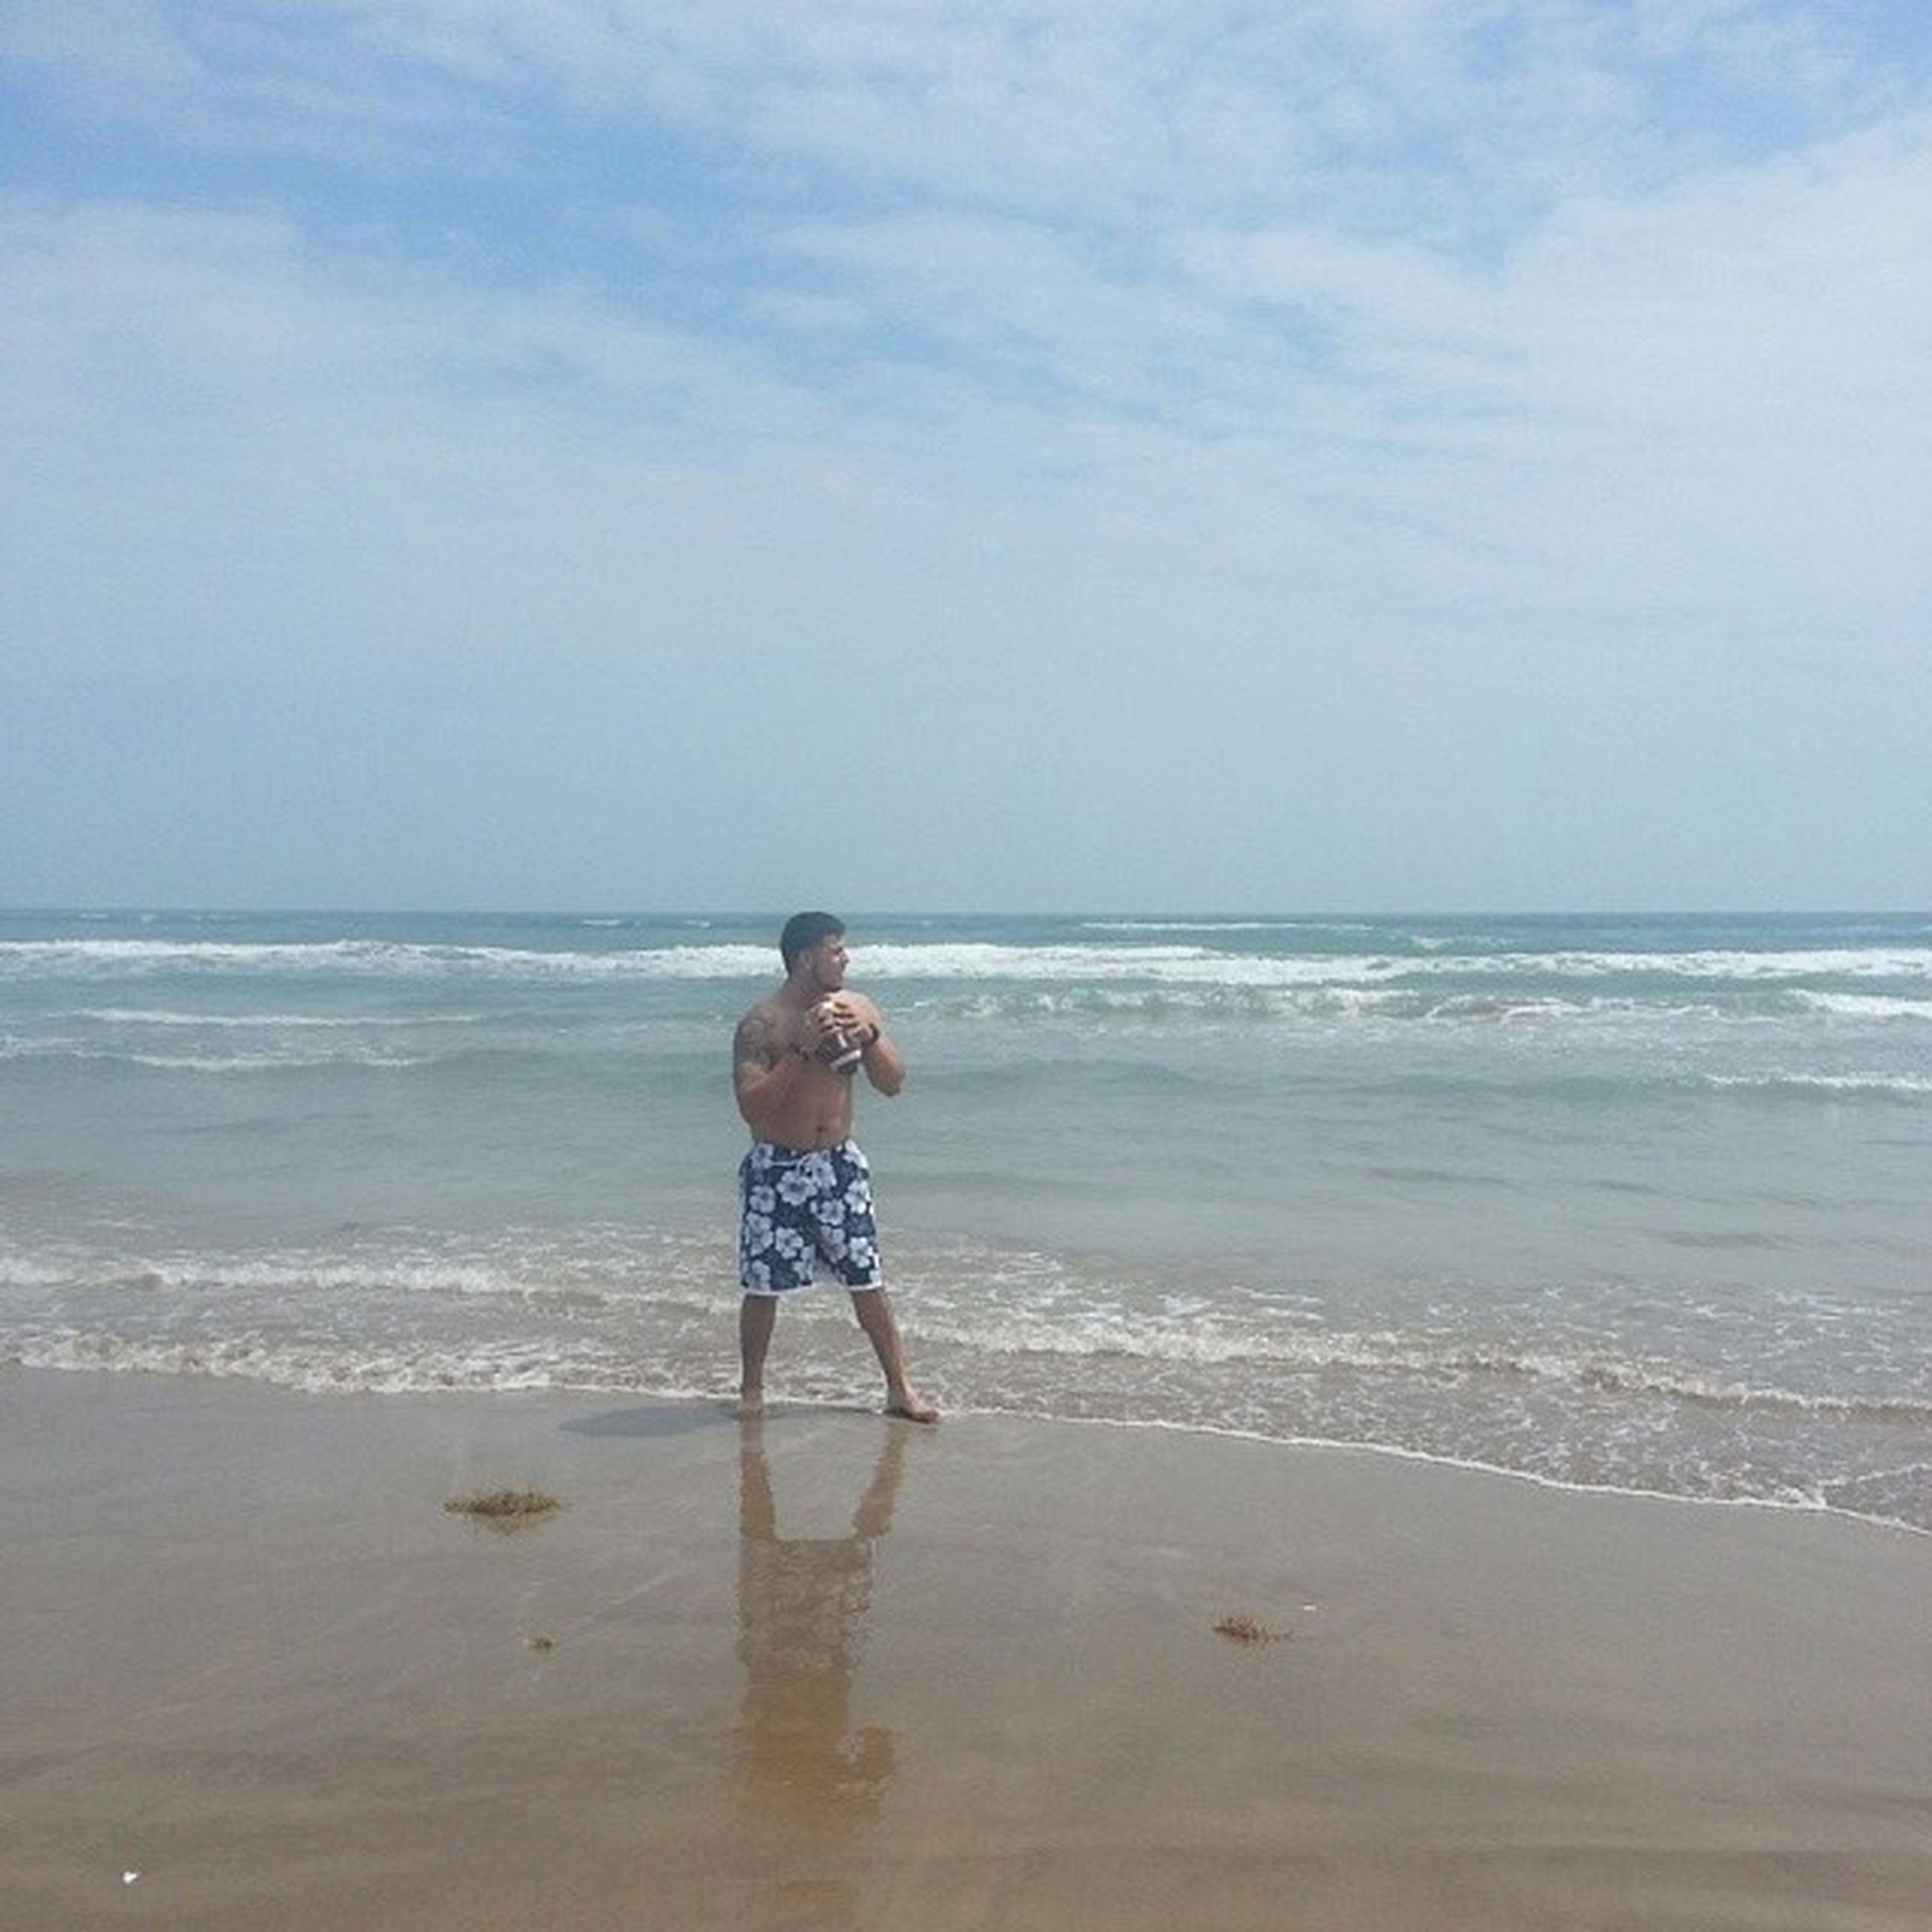 sea, beach, horizon over water, water, shore, sand, sky, leisure activity, lifestyles, full length, vacations, wave, person, scenics, beauty in nature, casual clothing, tranquility, nature